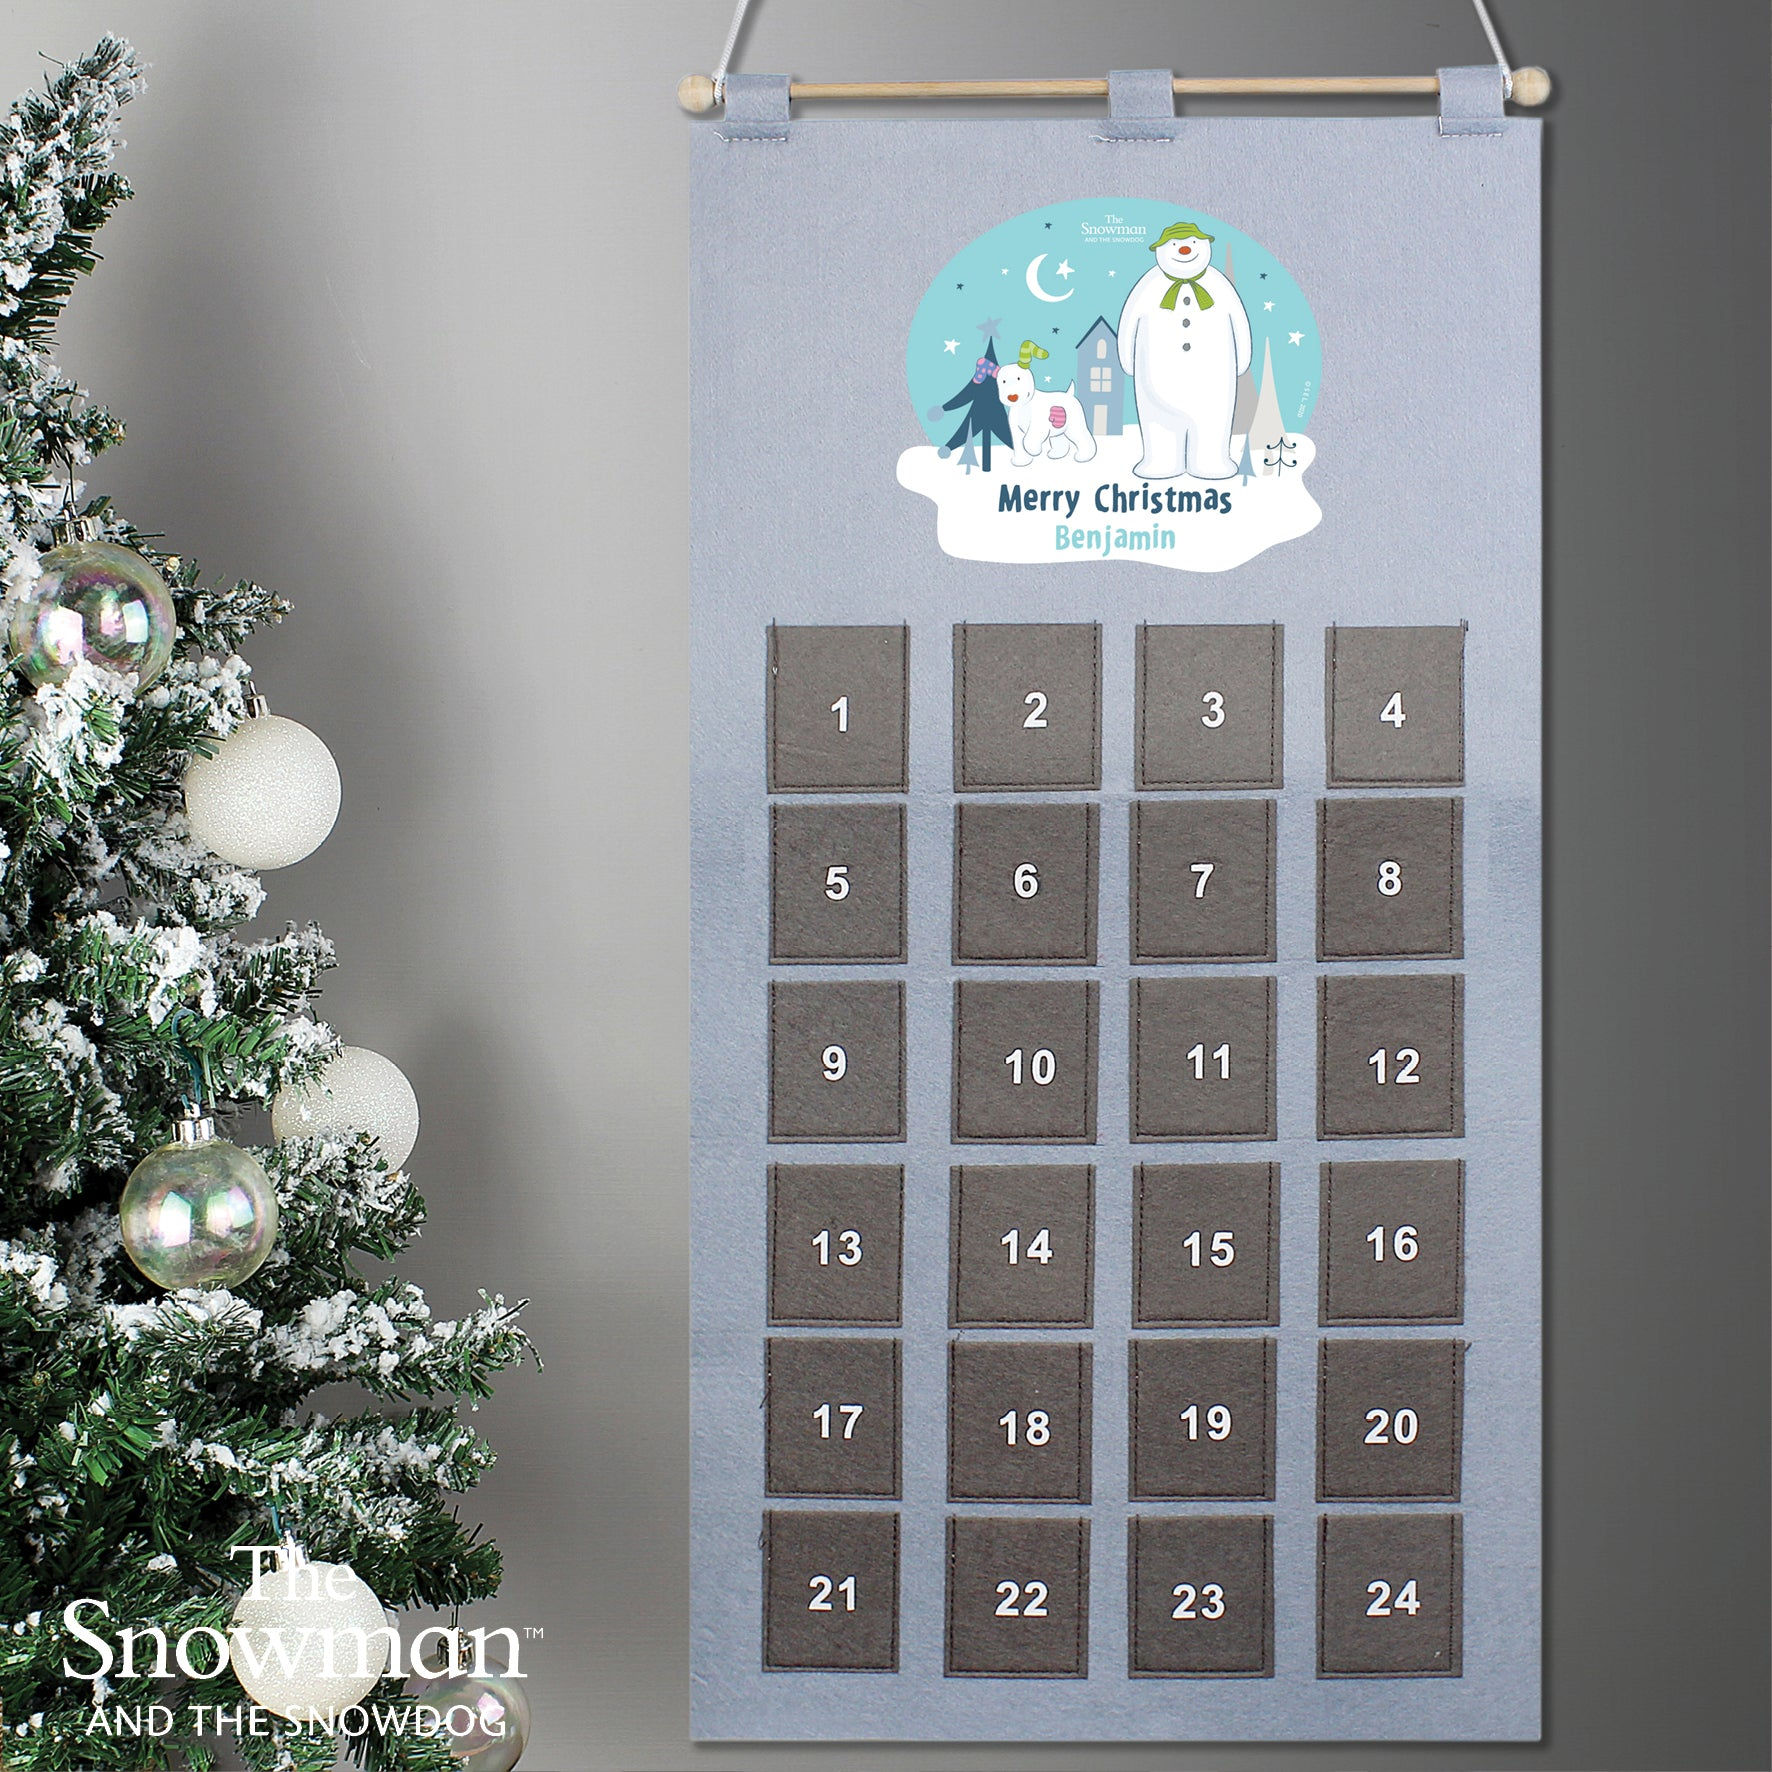 Personalised The Snowman and the Snowdog Advent Calendar In Silver Grey, Office Supplies by Low Cost Gifts